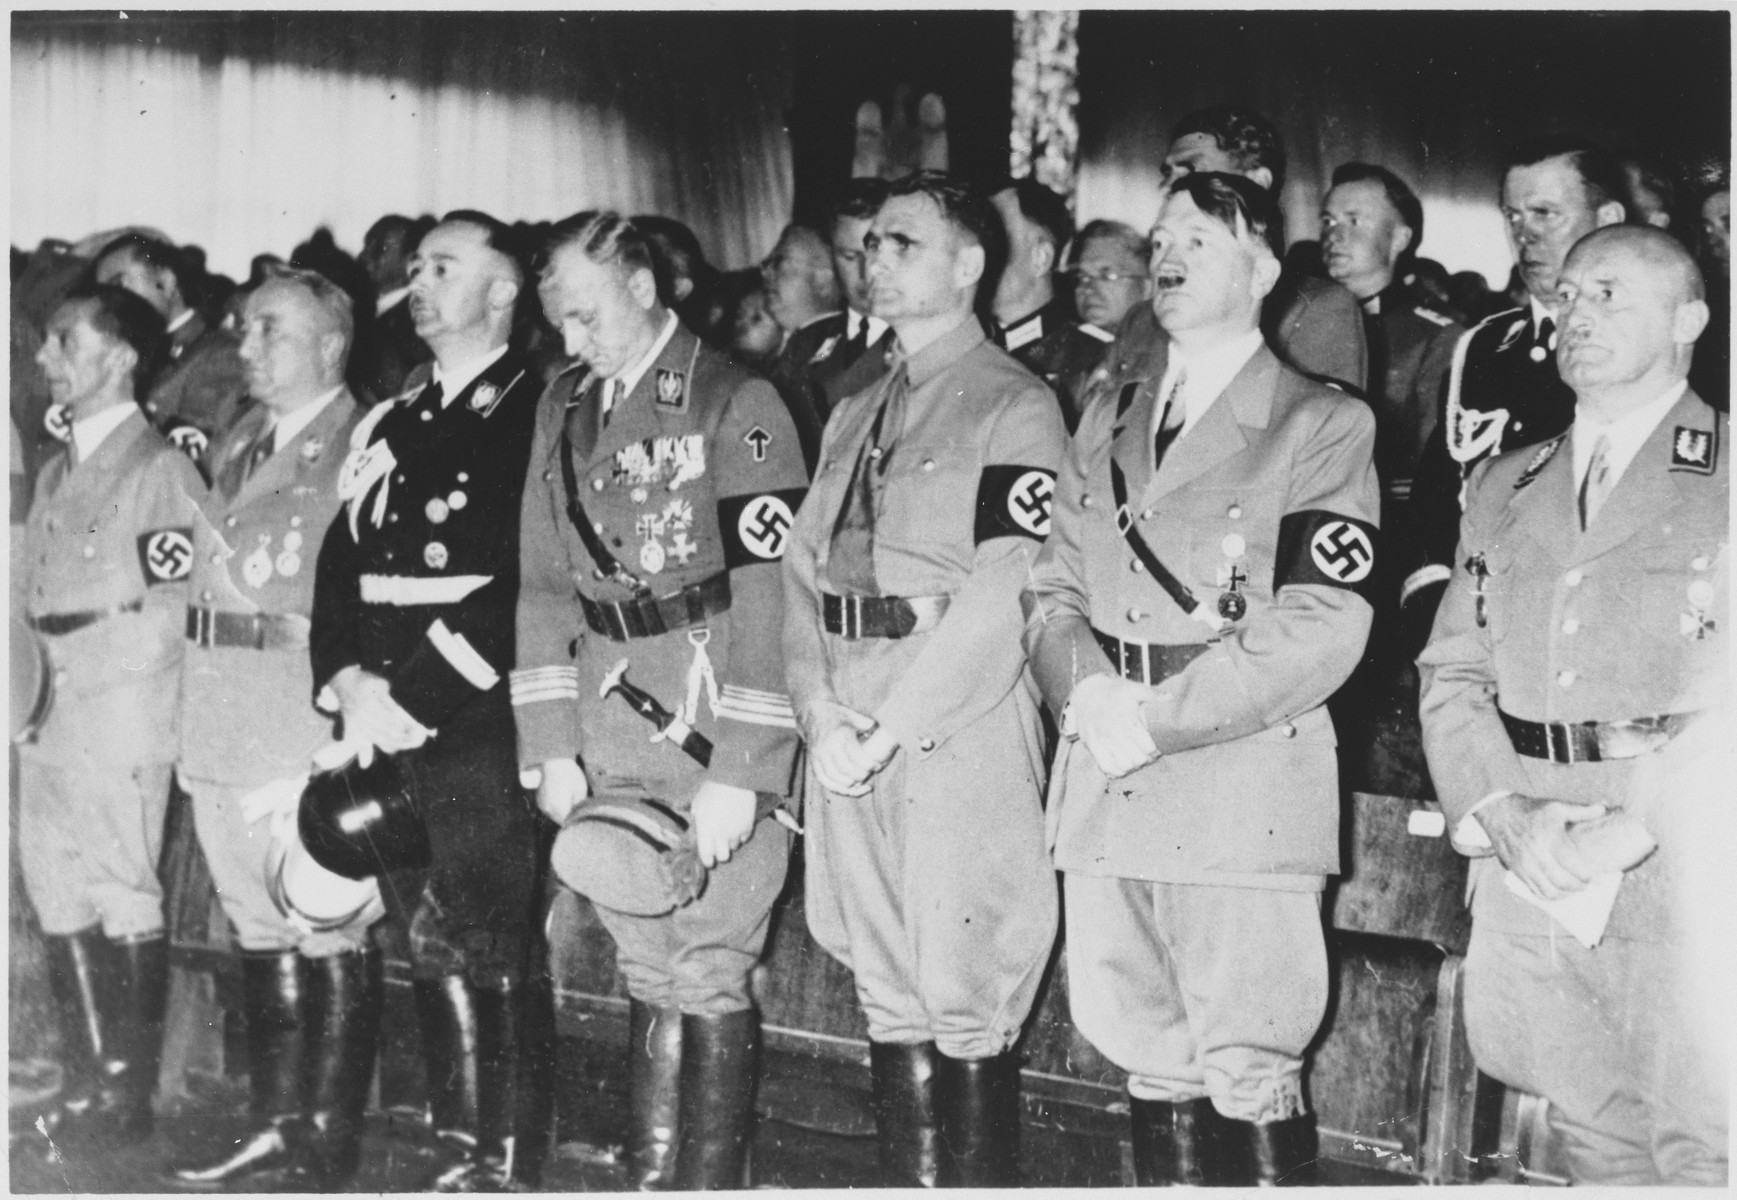 Nazi officials attend the opening ceremonies of the 1938 Party congress in Nuremberg.  Pictured from left to right are Joseph Goebbels, Robert Ley, Heinrich Himmler, Victor Lutze, Rudolf Hess, Adolf Hitler and Julius Streicher.